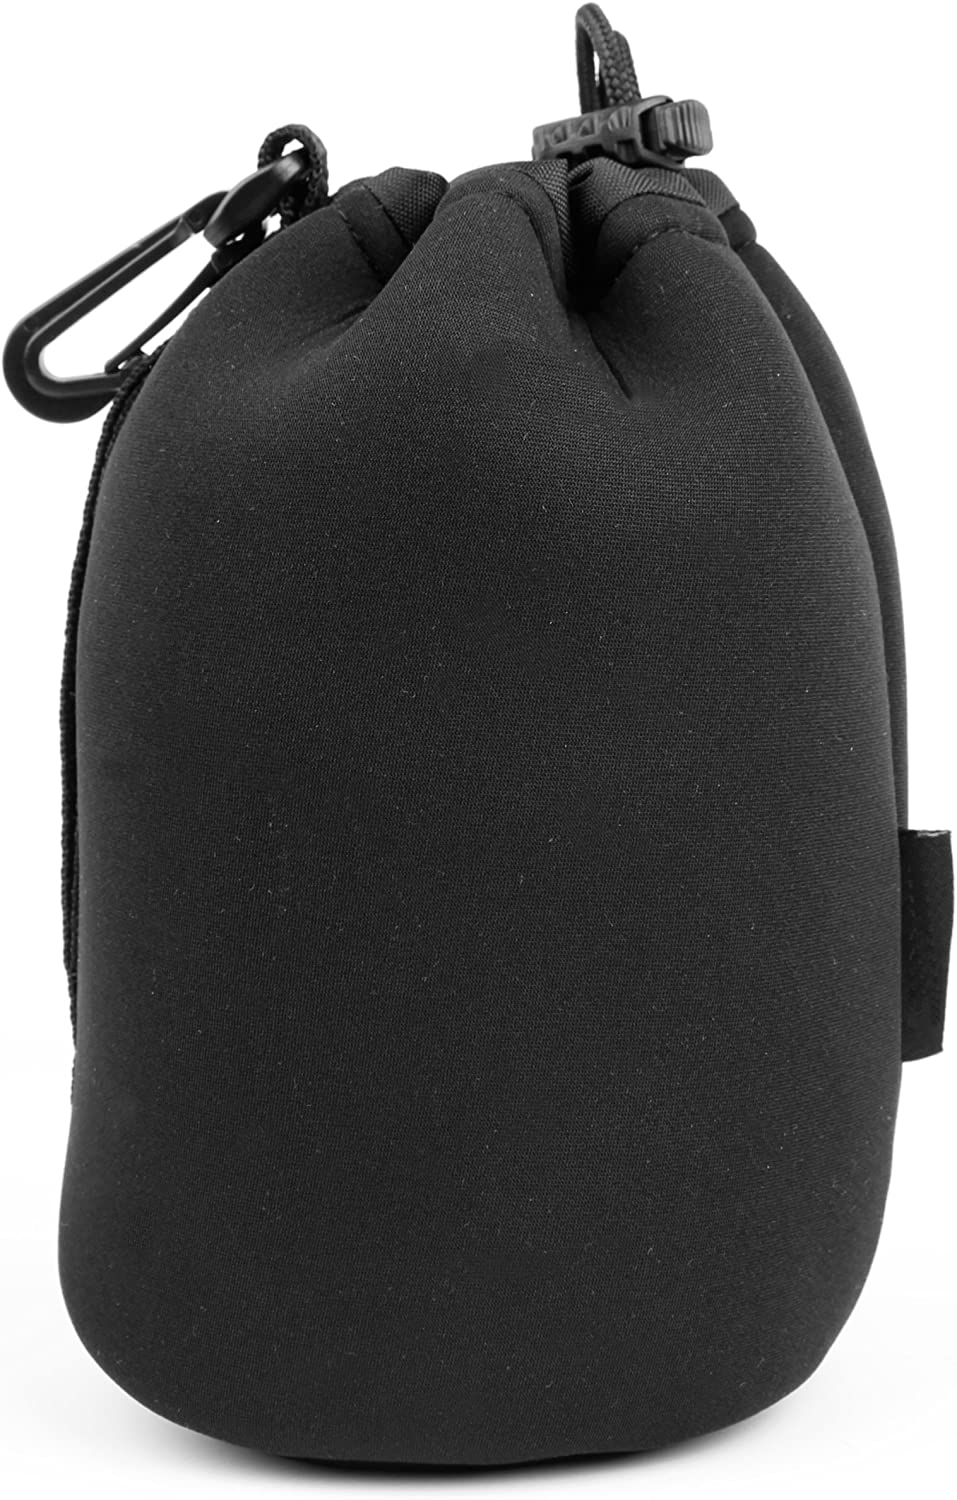 DURAGADGET Large Black Neoprene Padded Carry Case Compatible with Sigma Macro Lenses